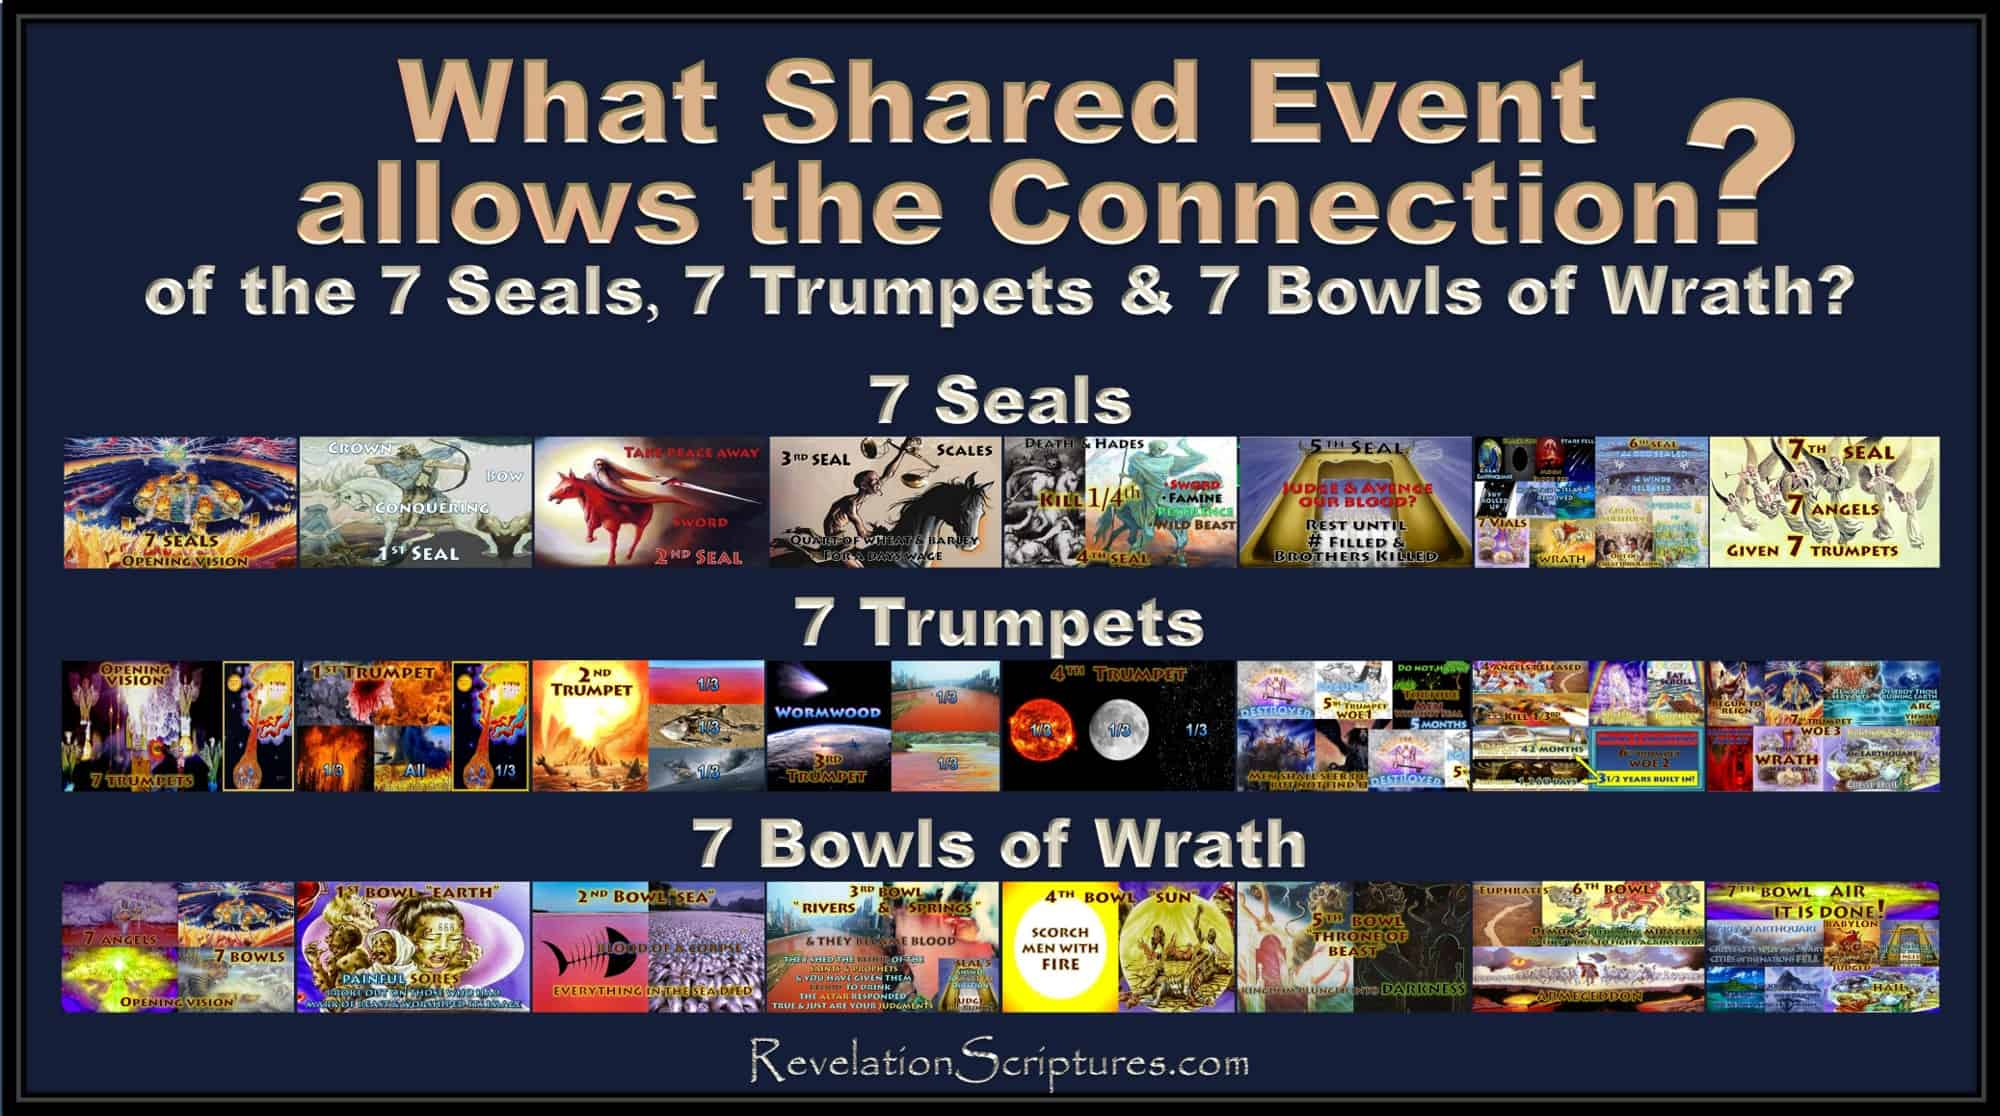 Book of Revelation,the Book of Revelation,7 Seals,7 Trumpets,7 Bowls of Wrath, how to connect,connecting 7 Seals to 7 Trumpets,Connecting 7 Seals to 7 Bowls of Wrath,Connecting 7 Seals to 7 Trumpets to 7 Bowls of Wrath,How to connect the timelines of Revelation,connecting the timelines of Revelation,connecting the events of Revelation